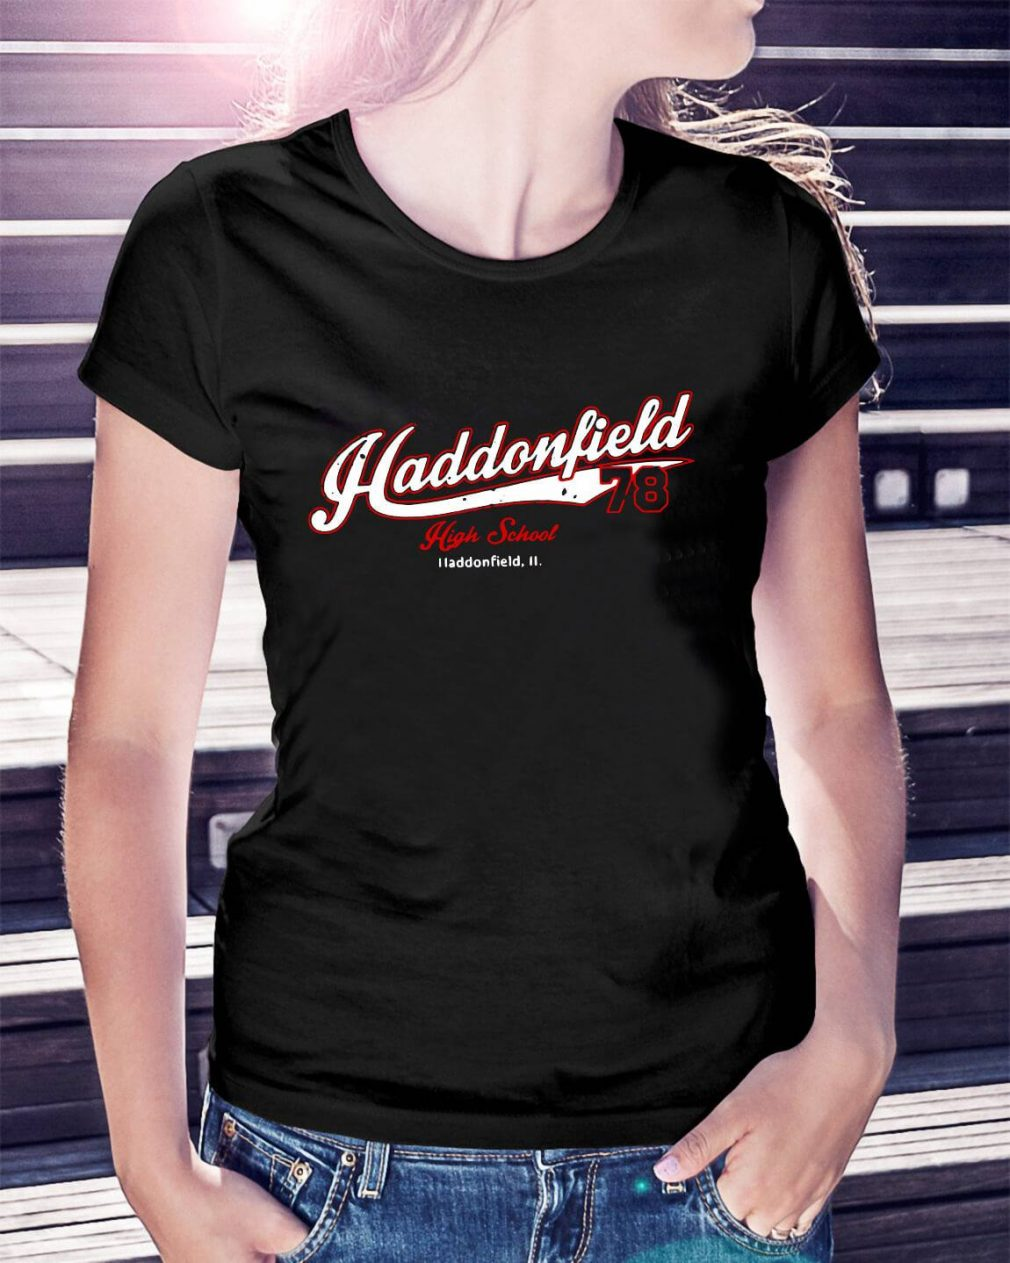 Haddonfield 78 high school I Haddonfield II Ladies Tee